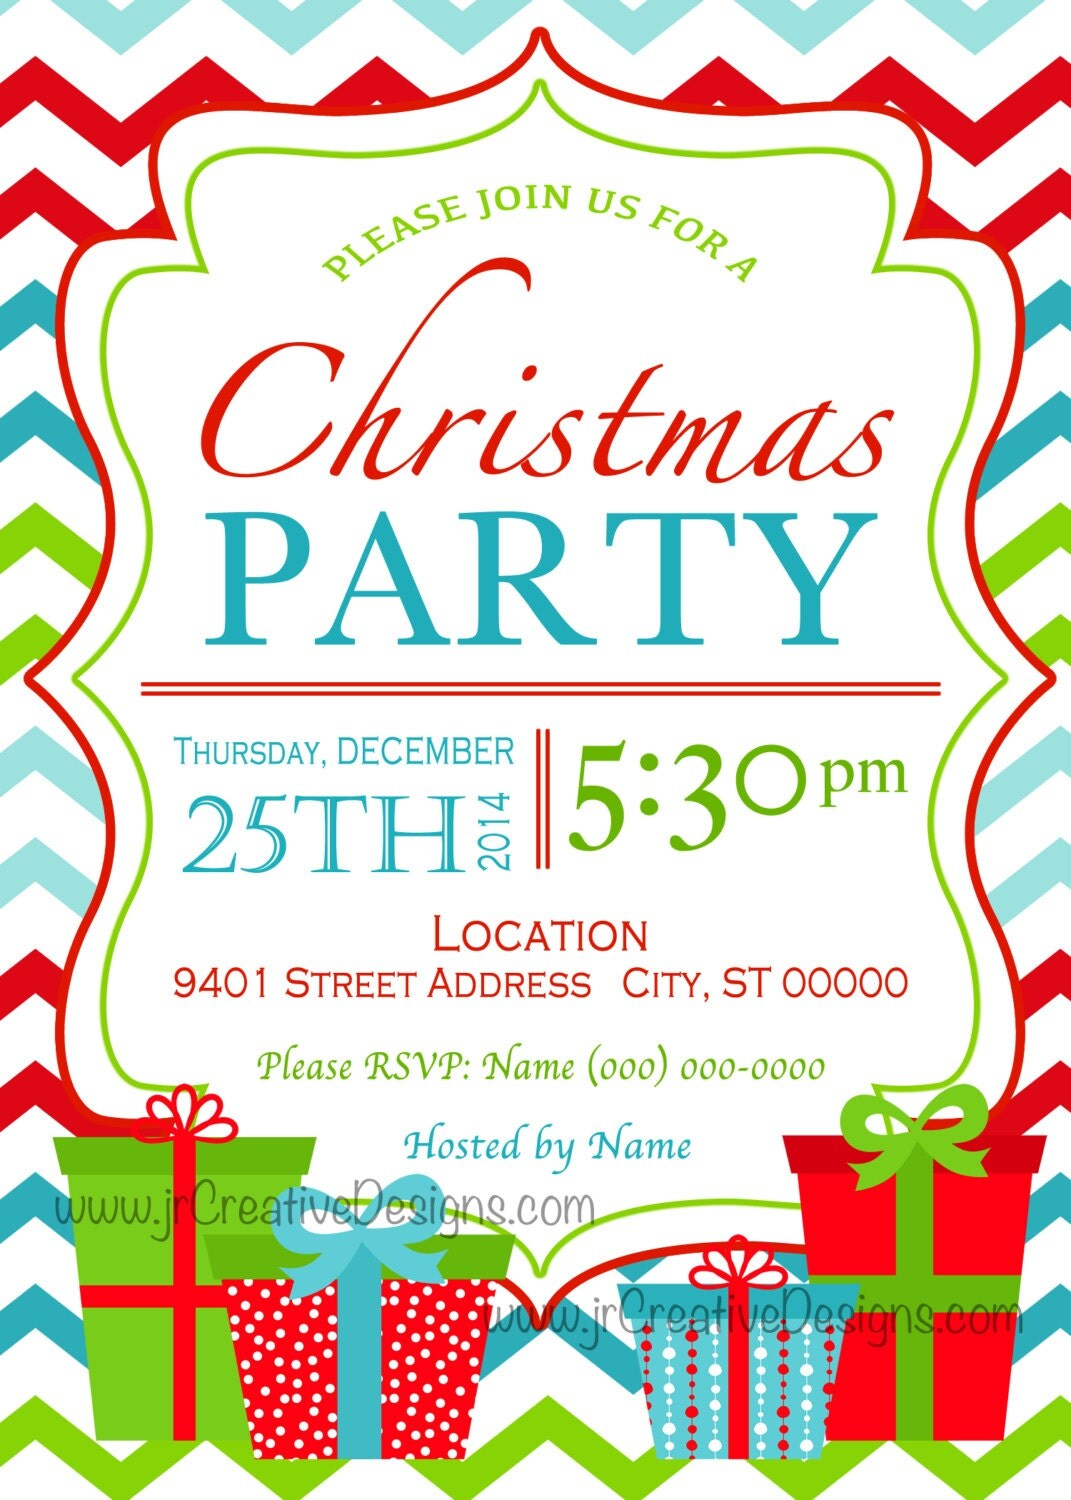 Christmas party invitation christmas gift exchange white elephant christmas party invitation christmas gift exchange white elephant work party business party christmas party invite christmas monicamarmolfo Gallery